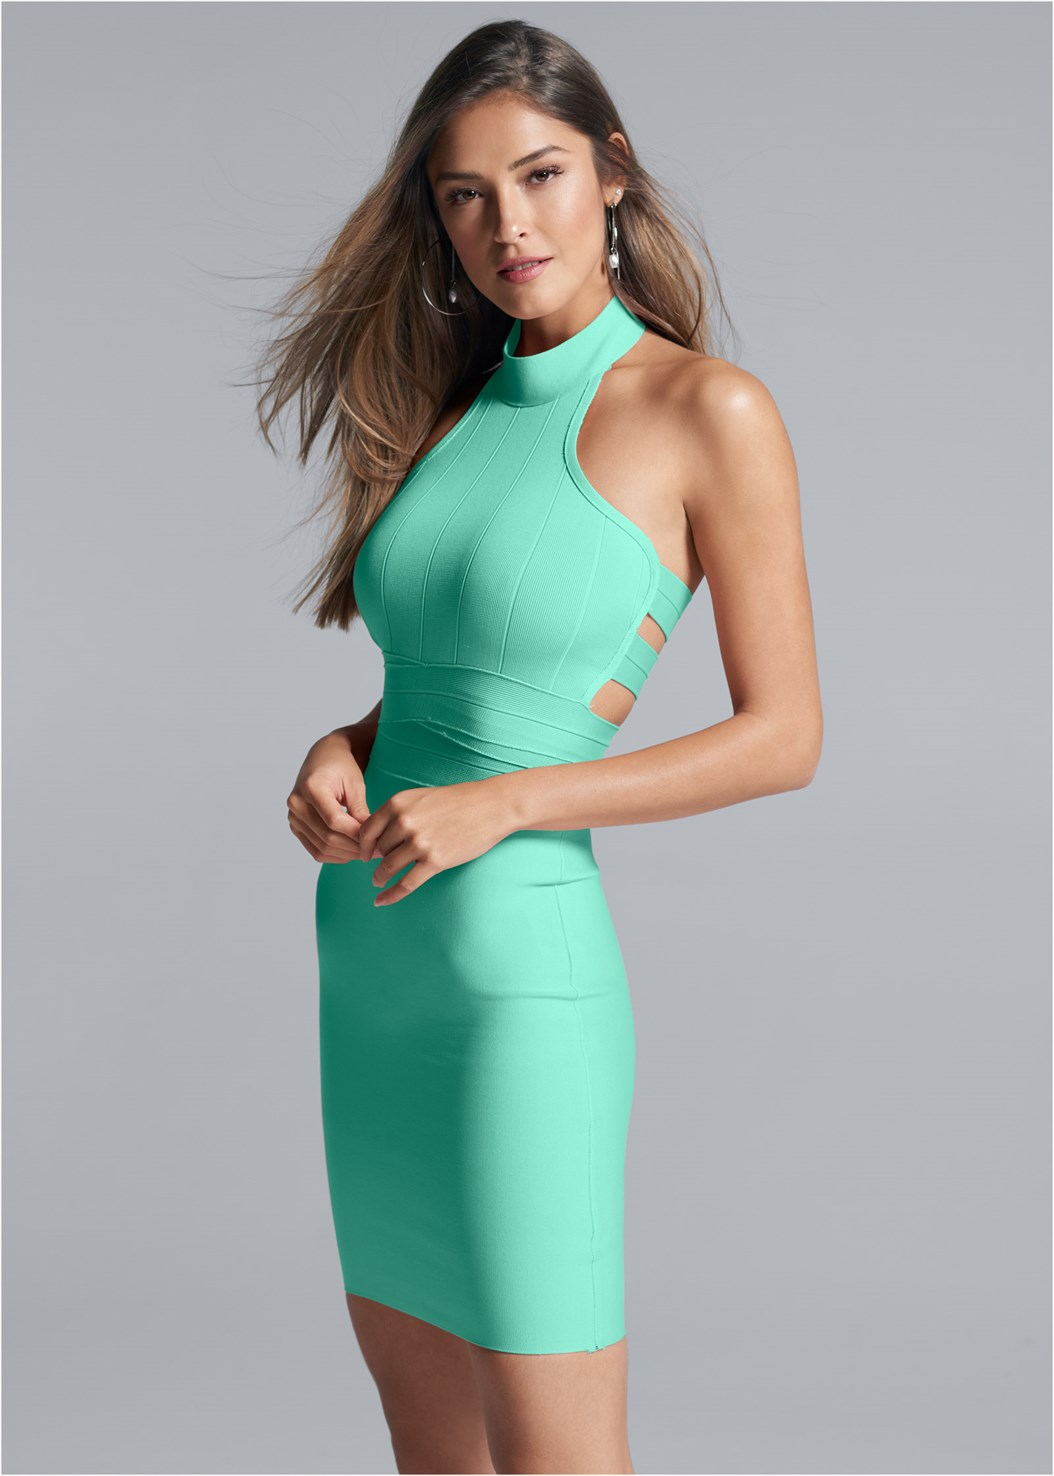 Mock Neck Bandage Dress,Venus Cupid Bra